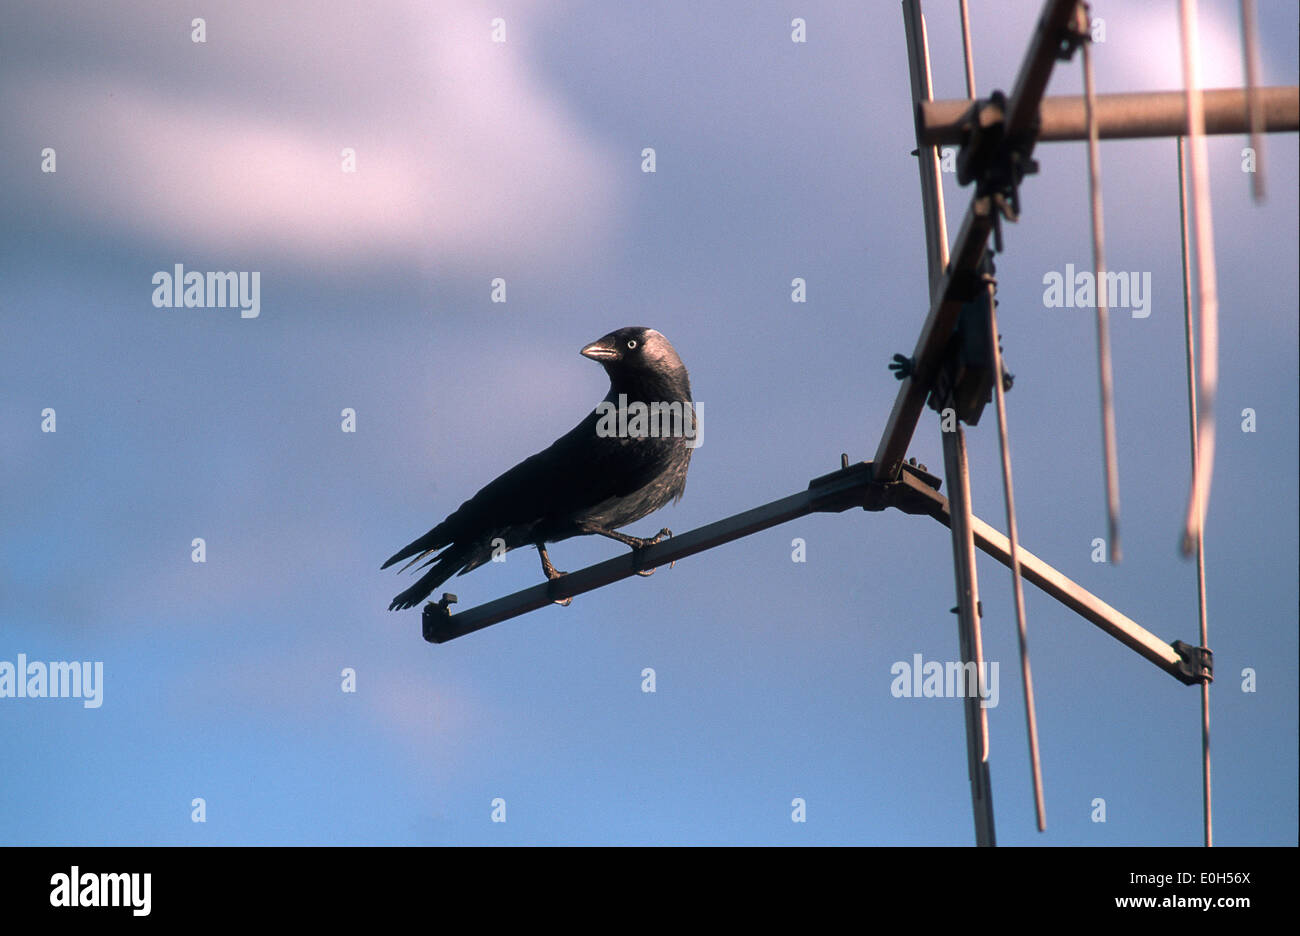 Raven on a TV aerial - Stock Image